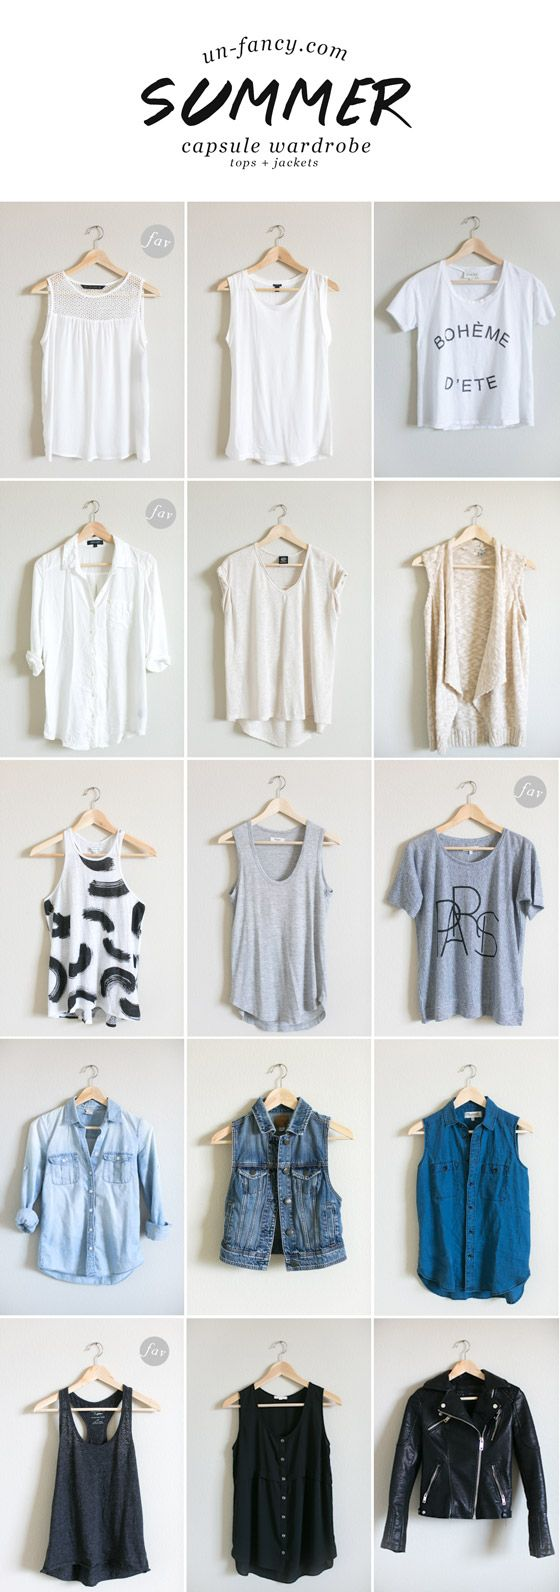 my capsule wardrobe // summer 2014 - Un-Fancy